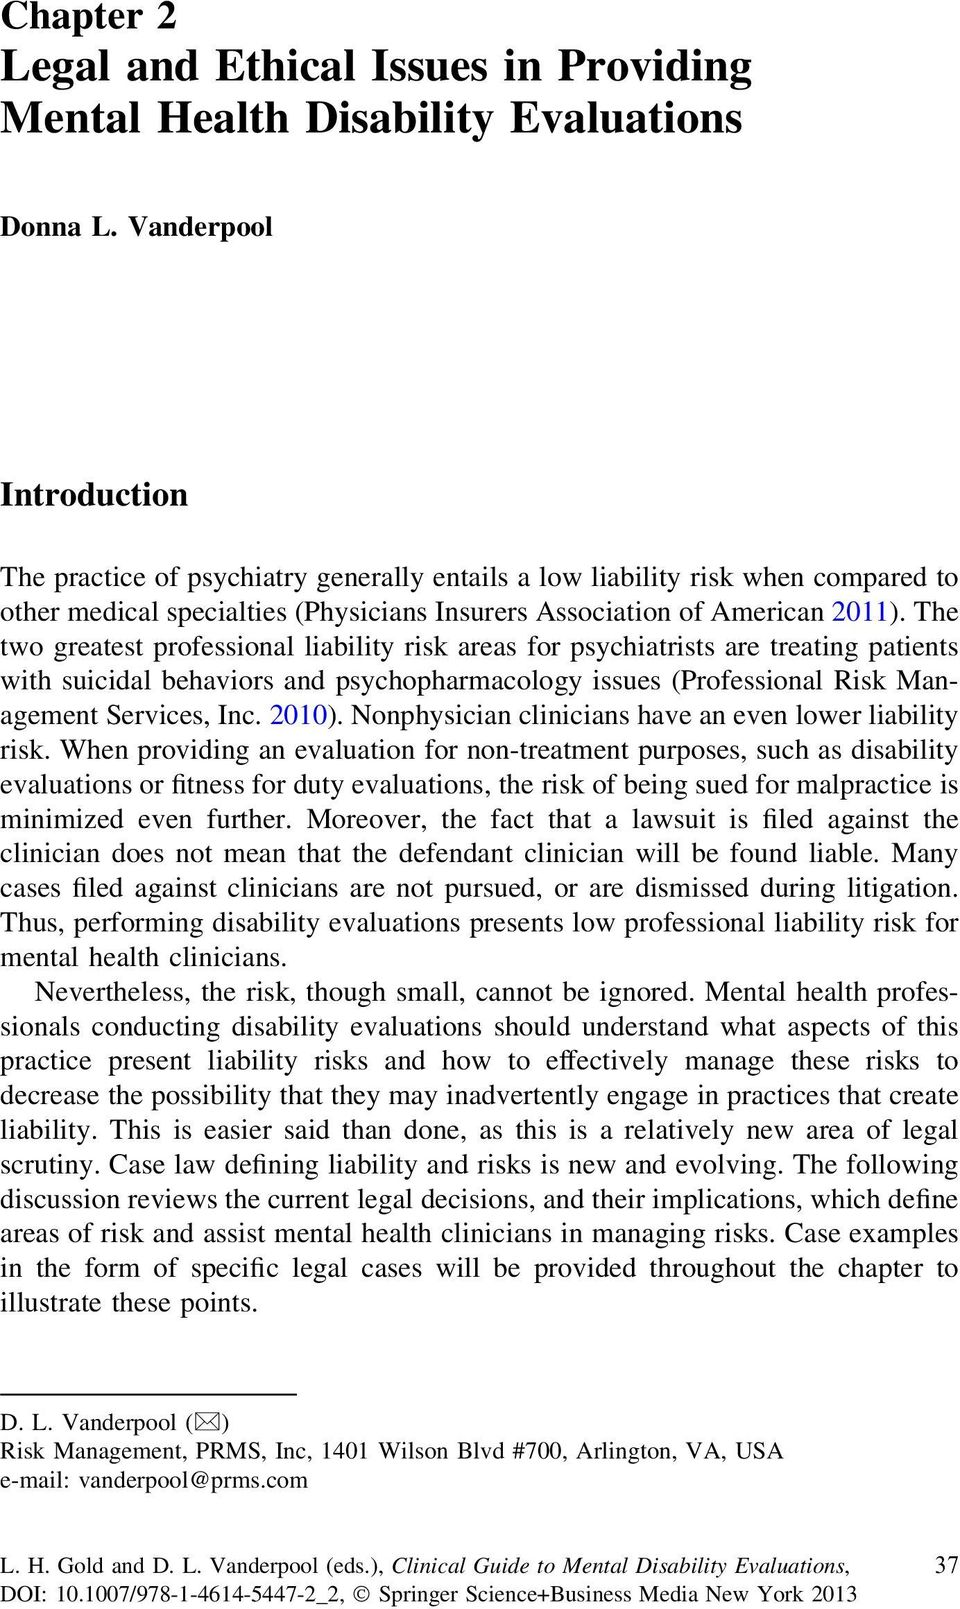 The two greatest professional liability risk areas for psychiatrists are treating patients with suicidal behaviors and psychopharmacology issues (Professional Risk Management Services, Inc. 2010).